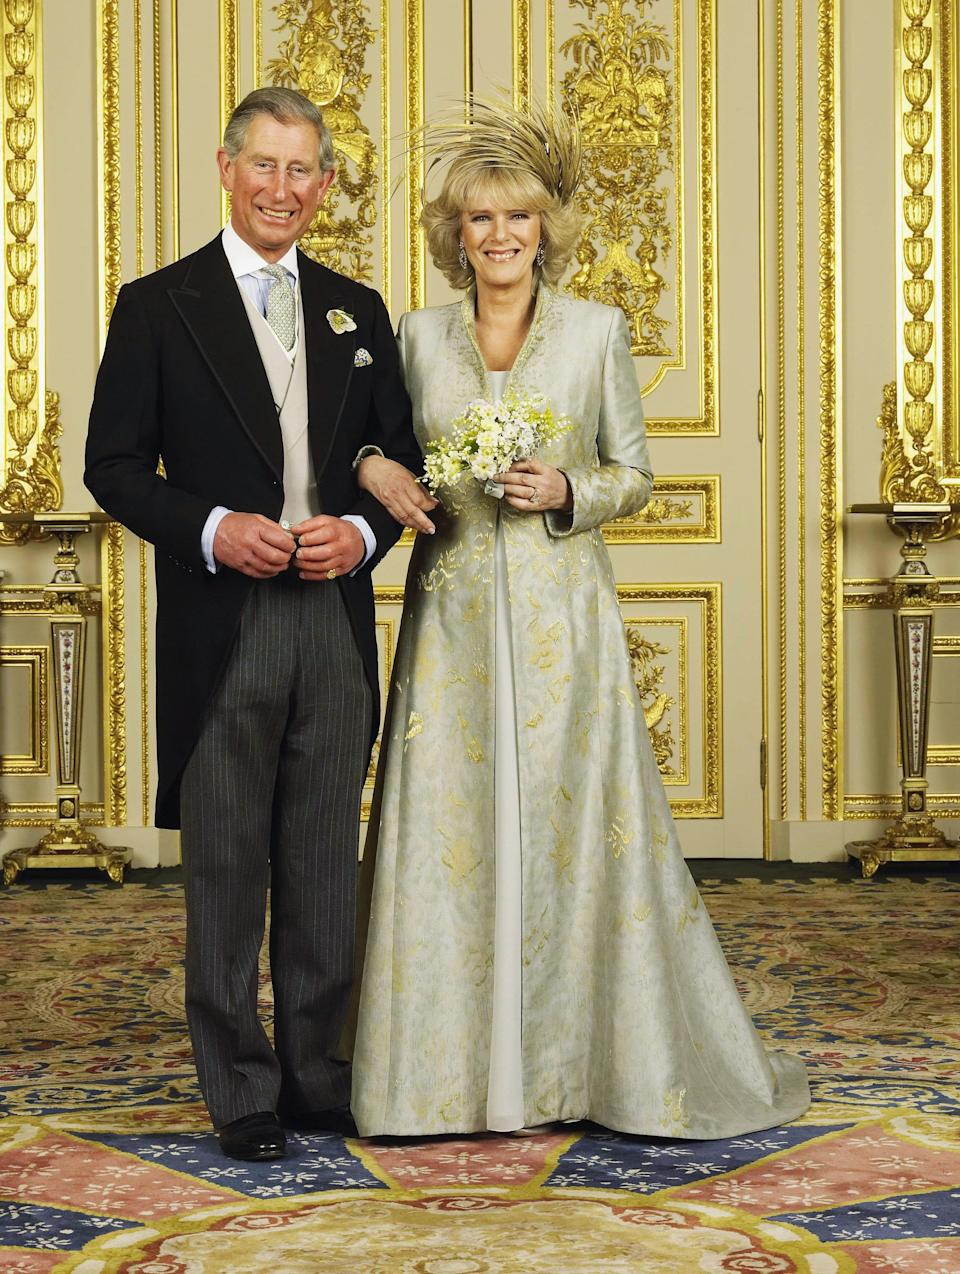 Prince Charles married Camilla Parker Bowles in 2005. Image via Getty Images.